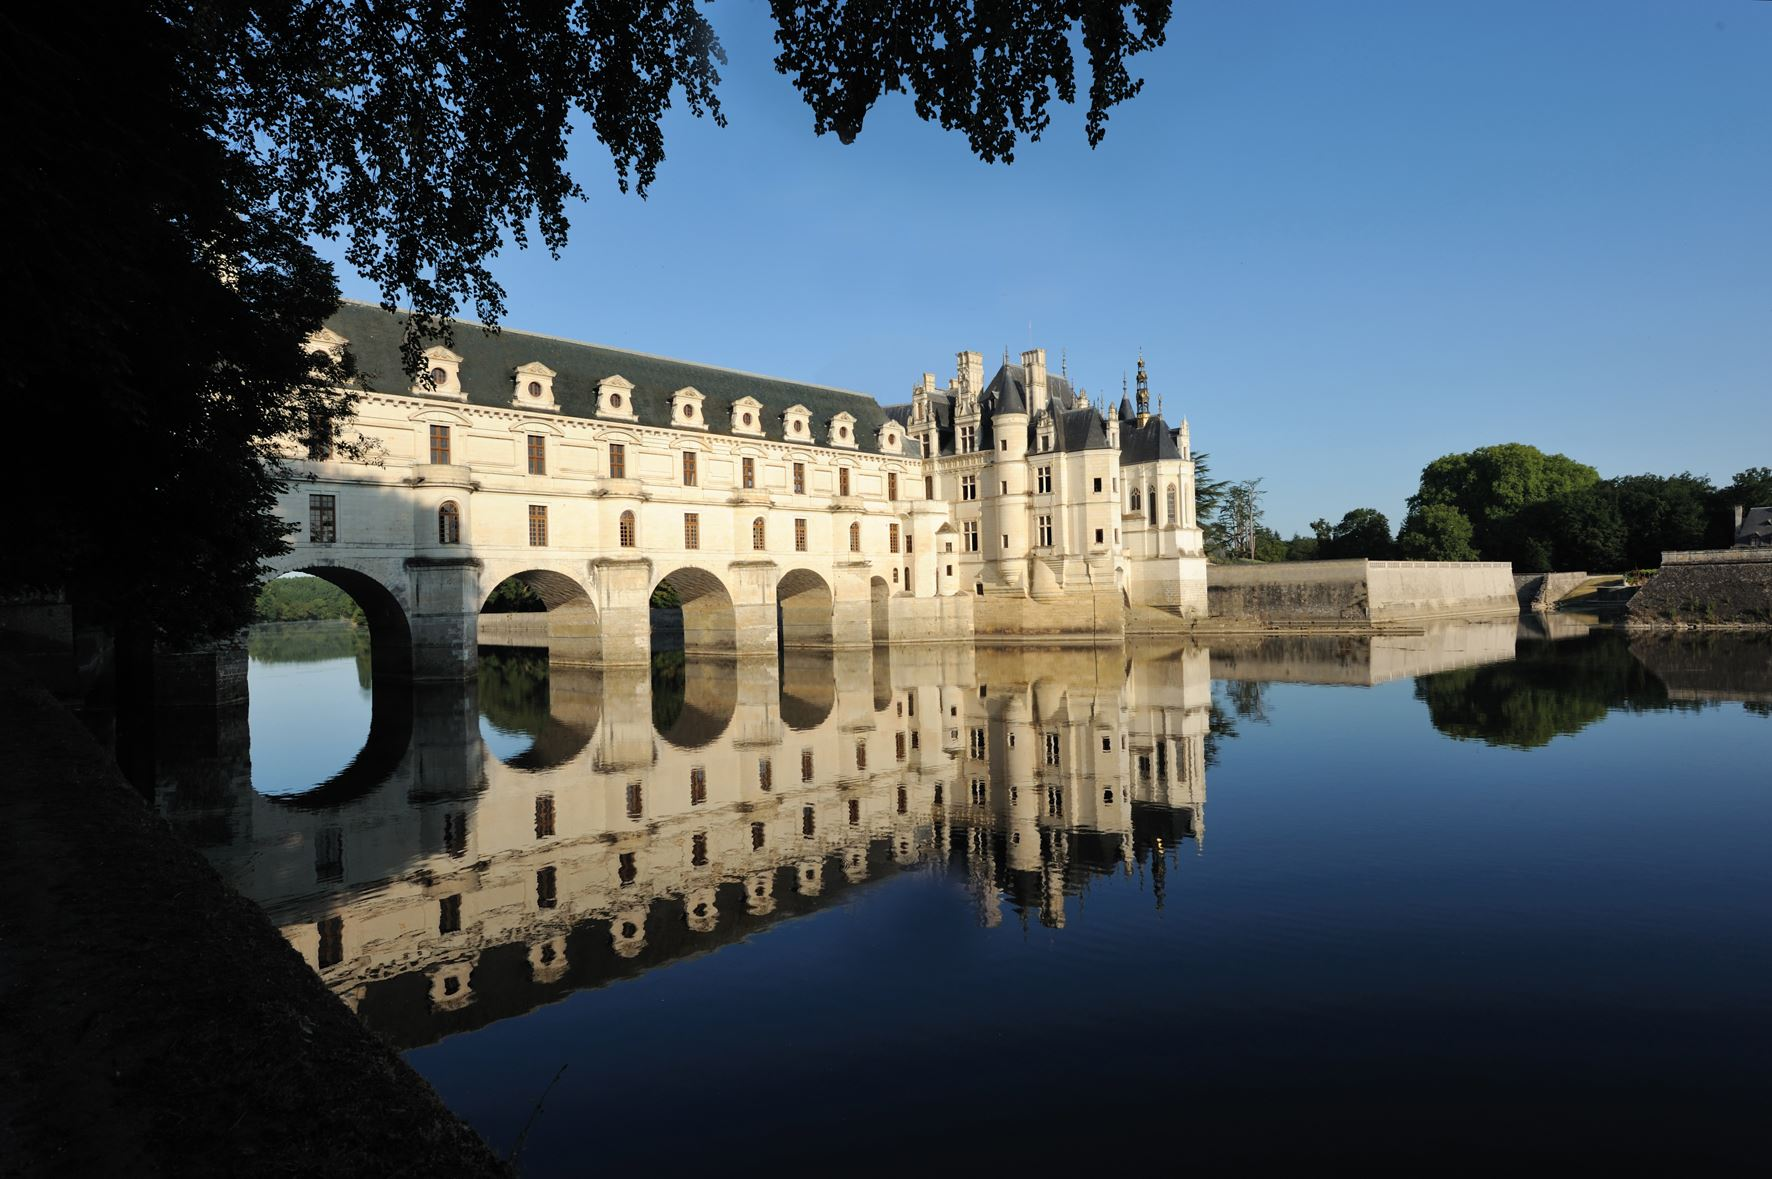 DISCOVERING THE LOIRE VALLEY CHATEAUX BY MINIBUS - 3 DAYS/2 NIGHTS from 359€/person